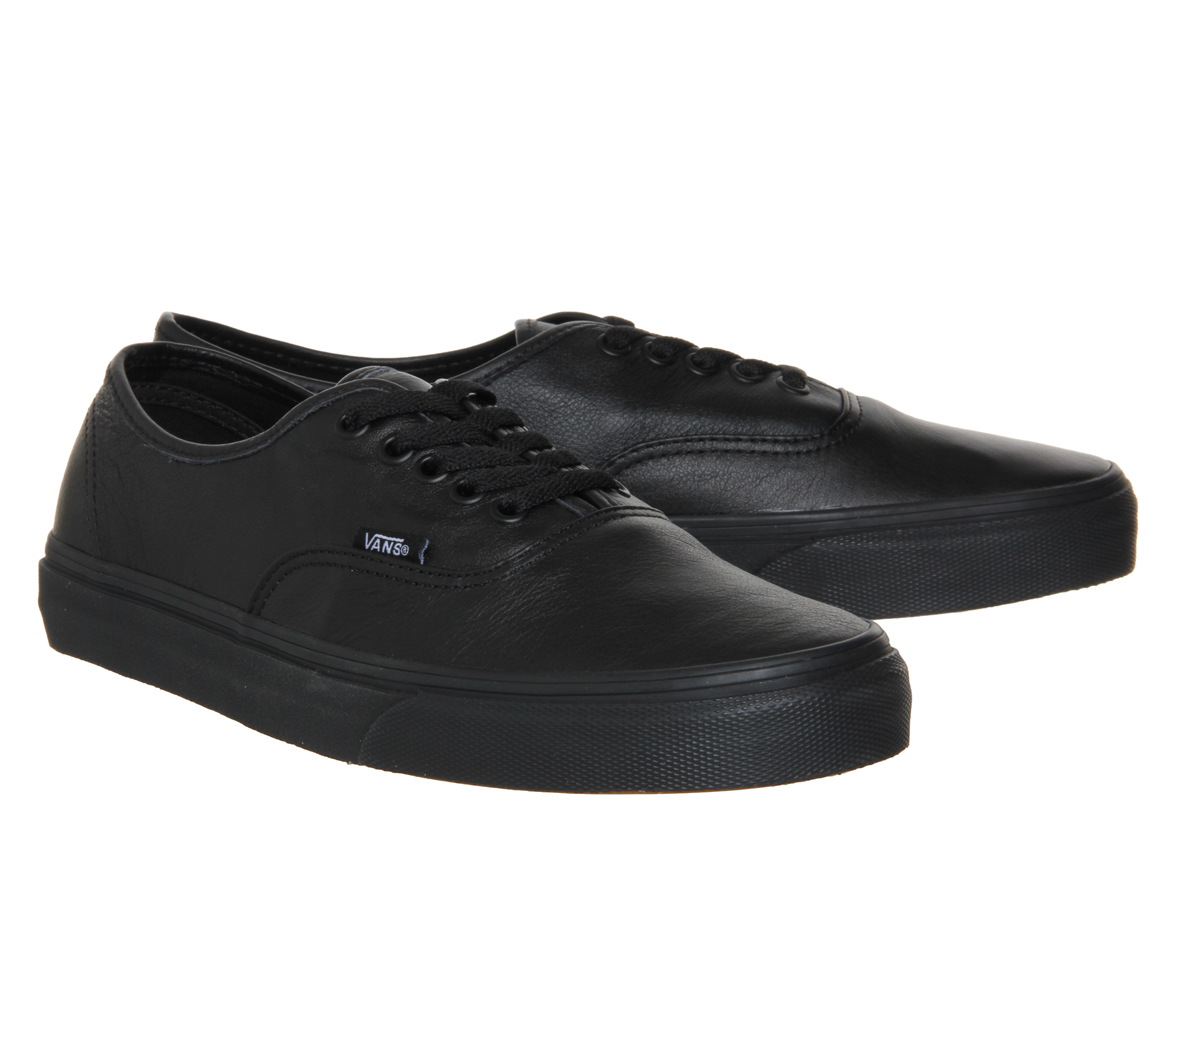 leather vans all black